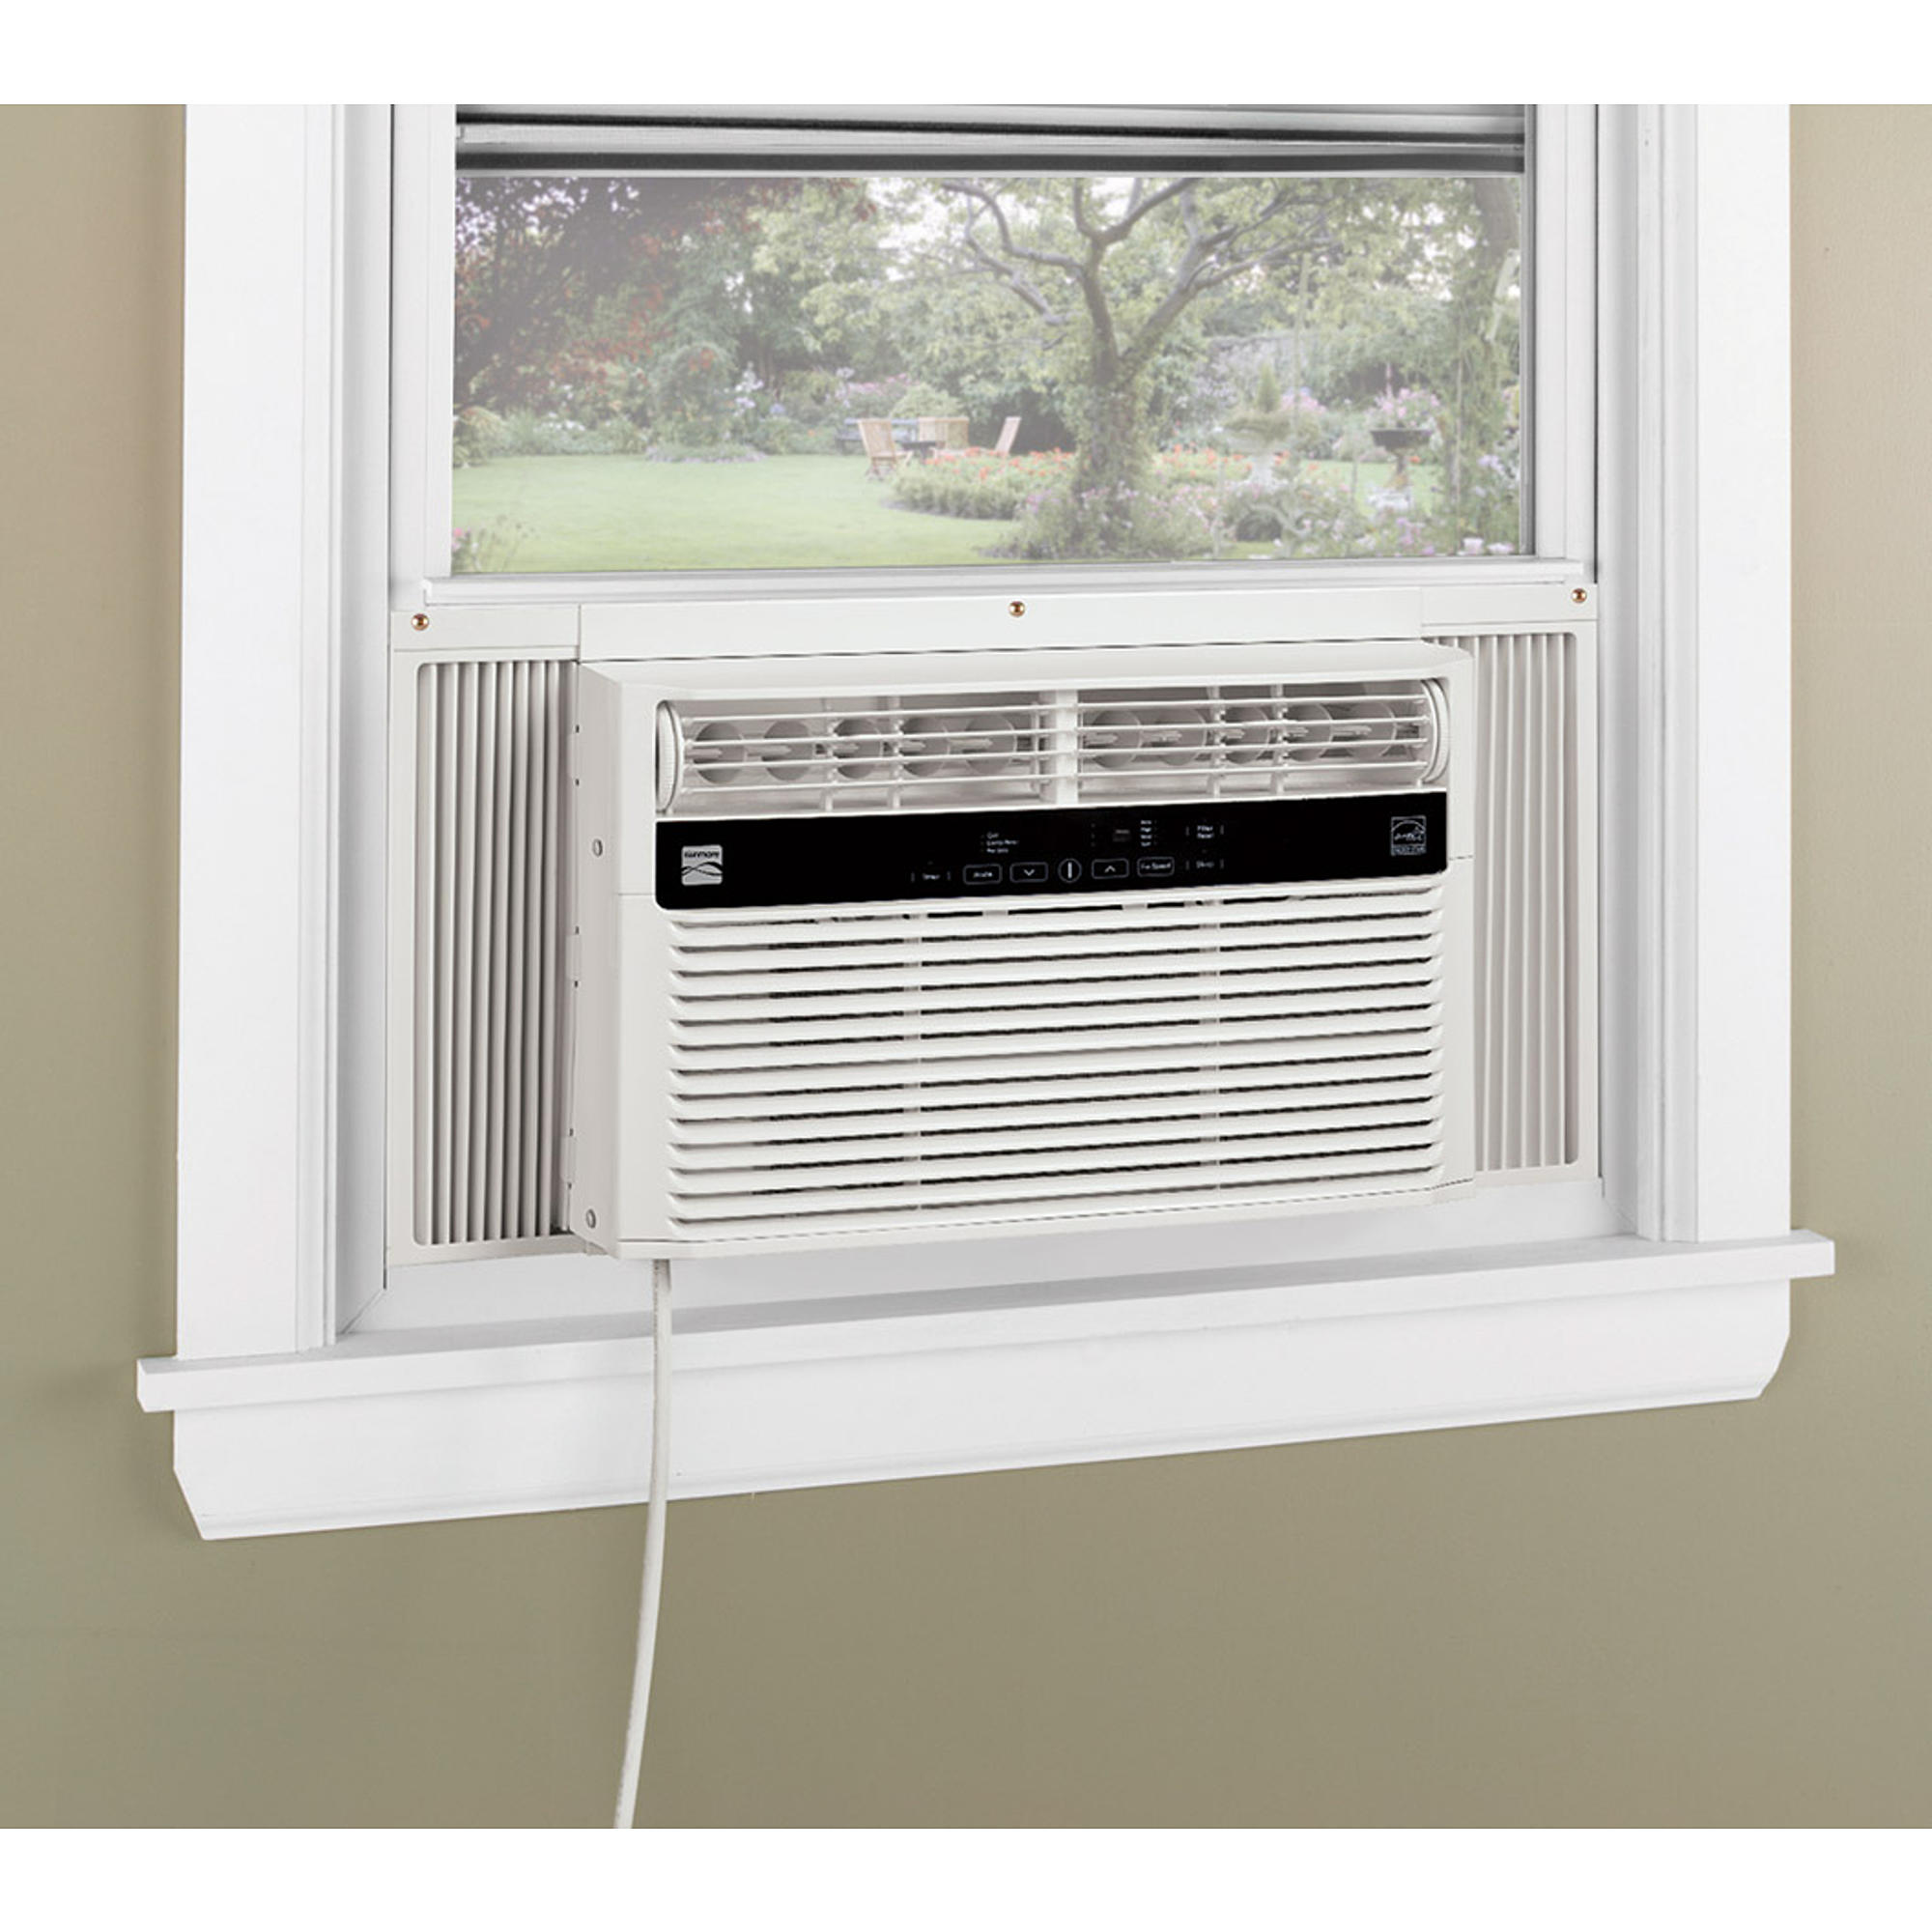 Common window air conditioner problems - running but not